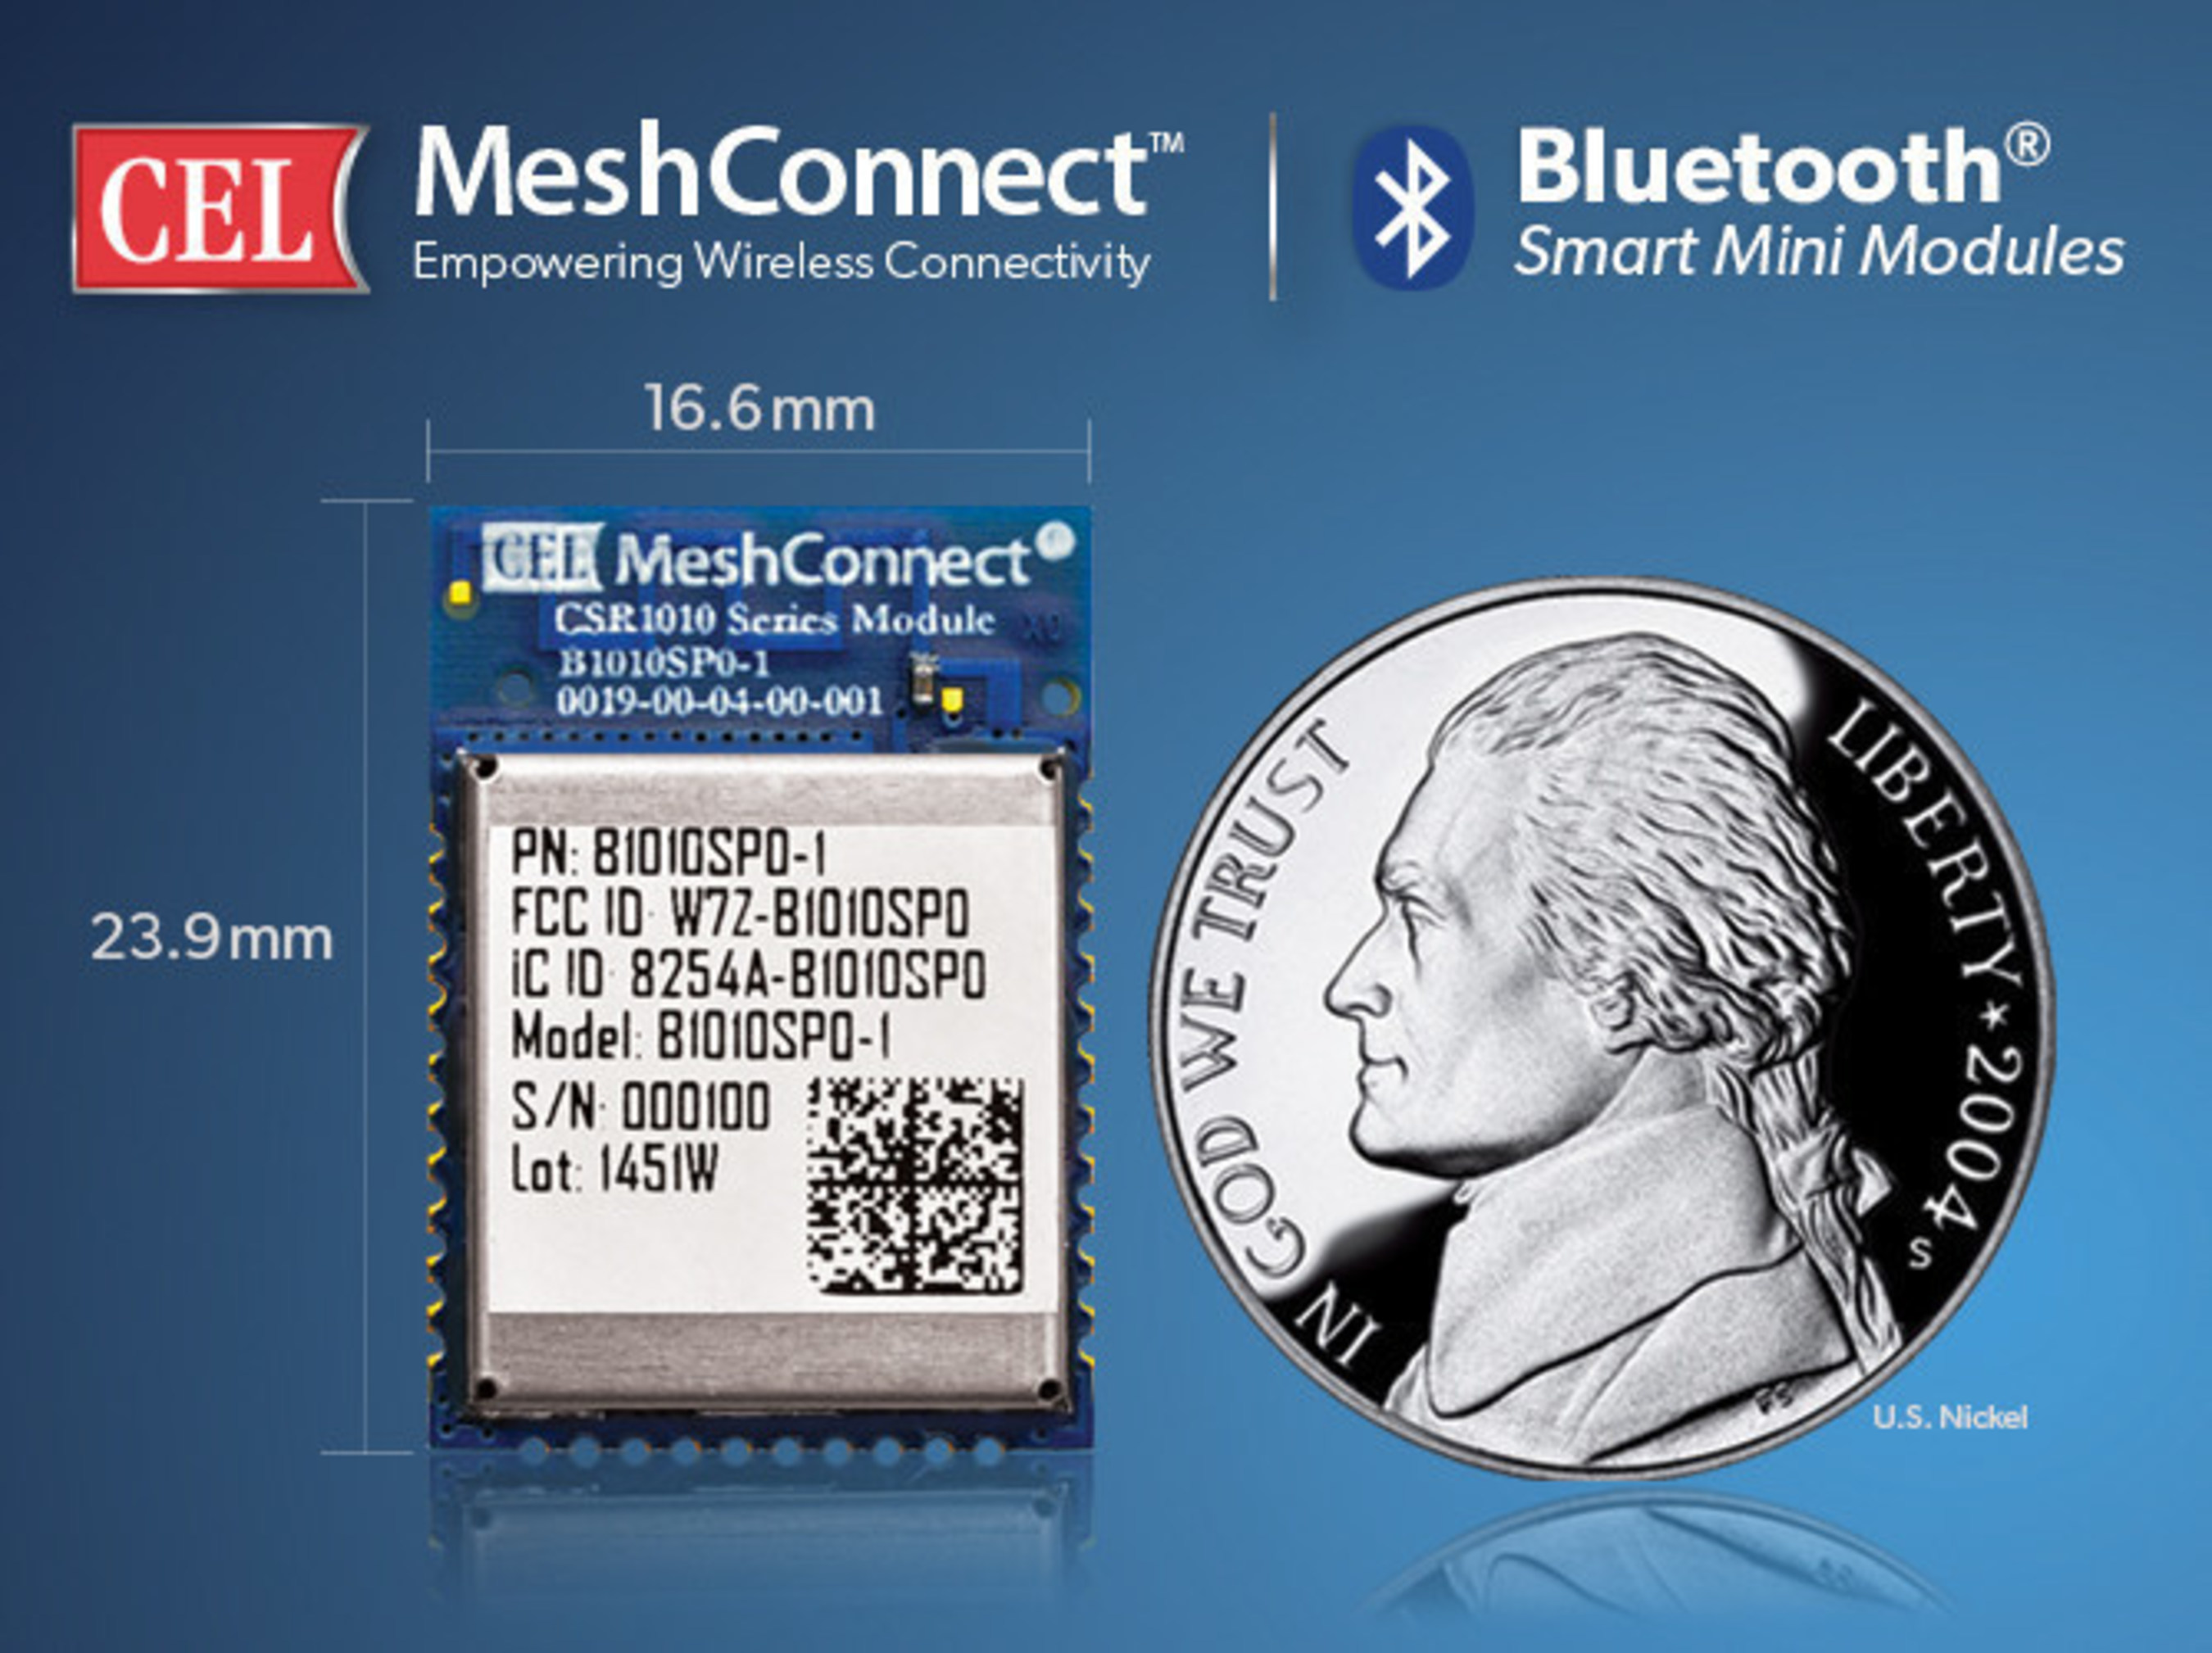 CEL's MeshConnect B1010 series of Bluetooth Smart Mini Modules